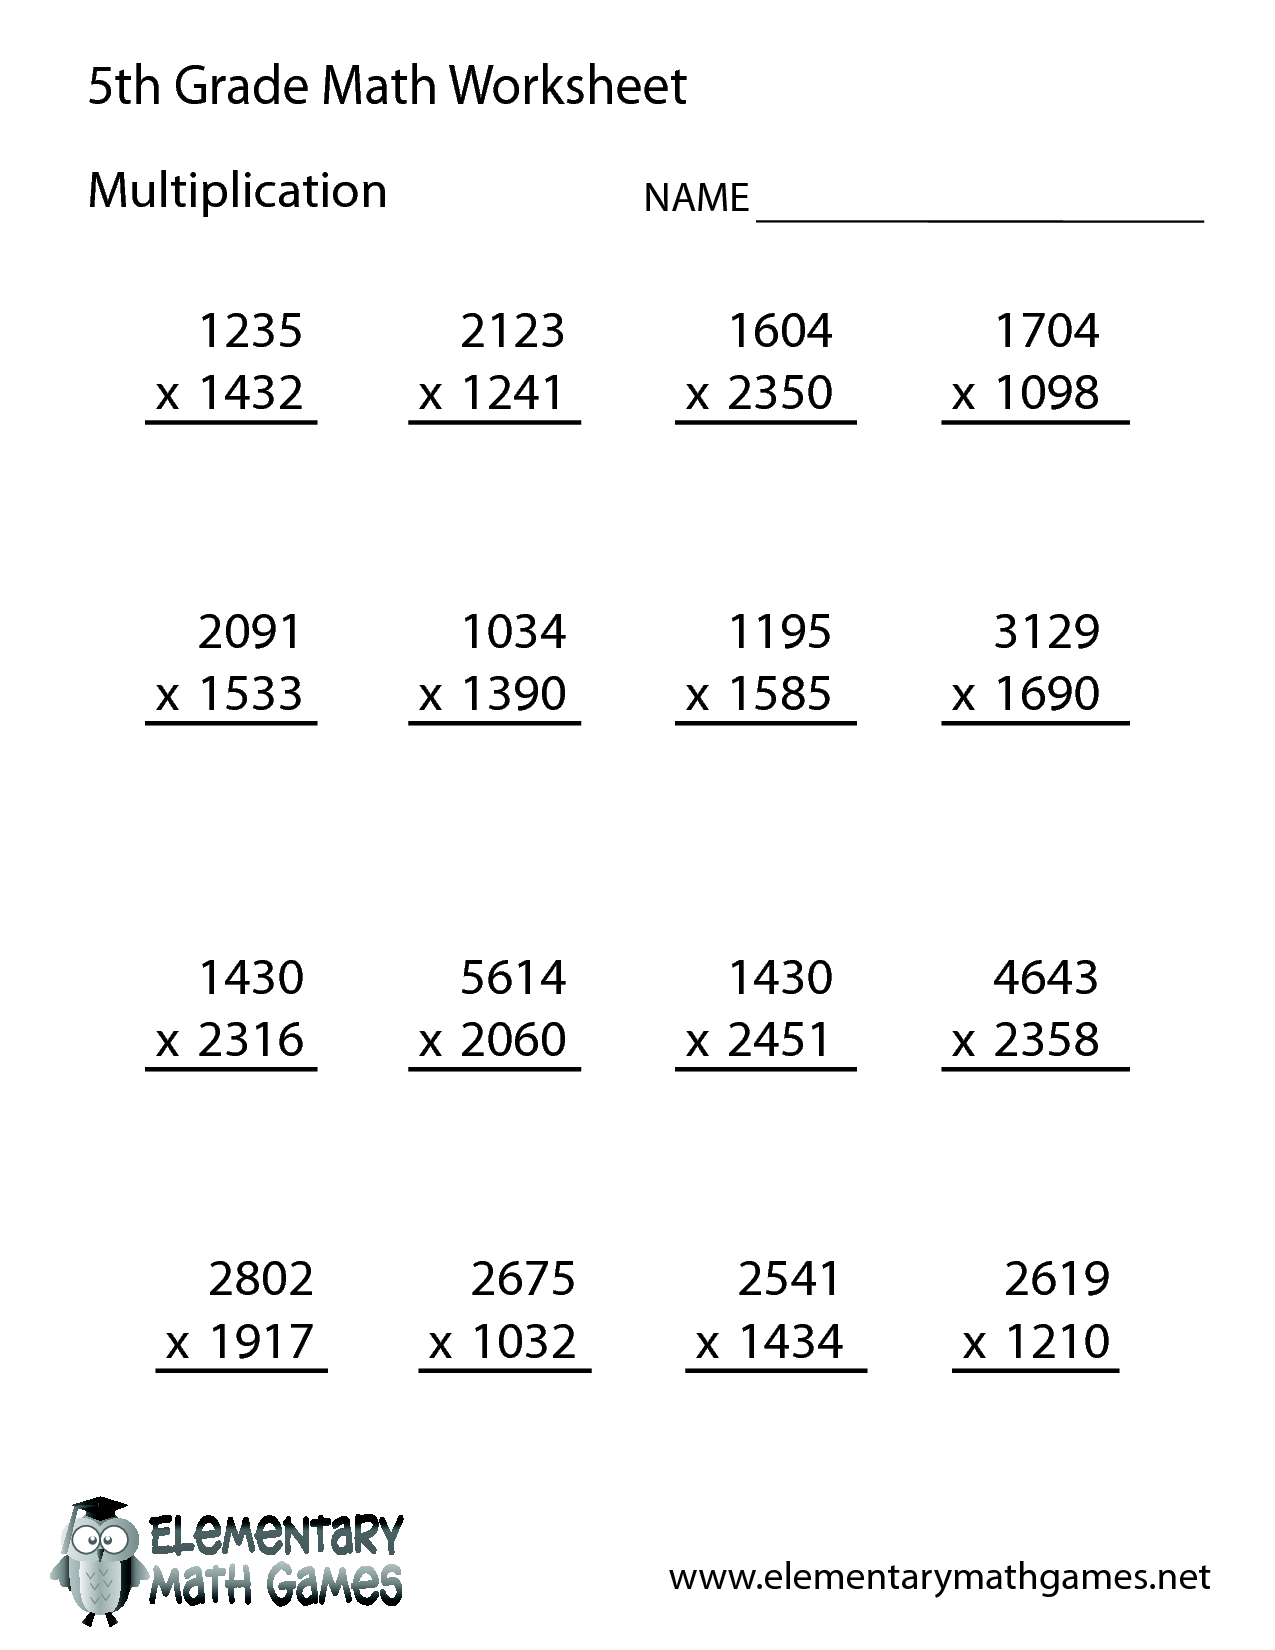 Worksheet Math Worksheet For 5th Grade 1000 images about fifth grade worksheets on pinterest and math worksheets